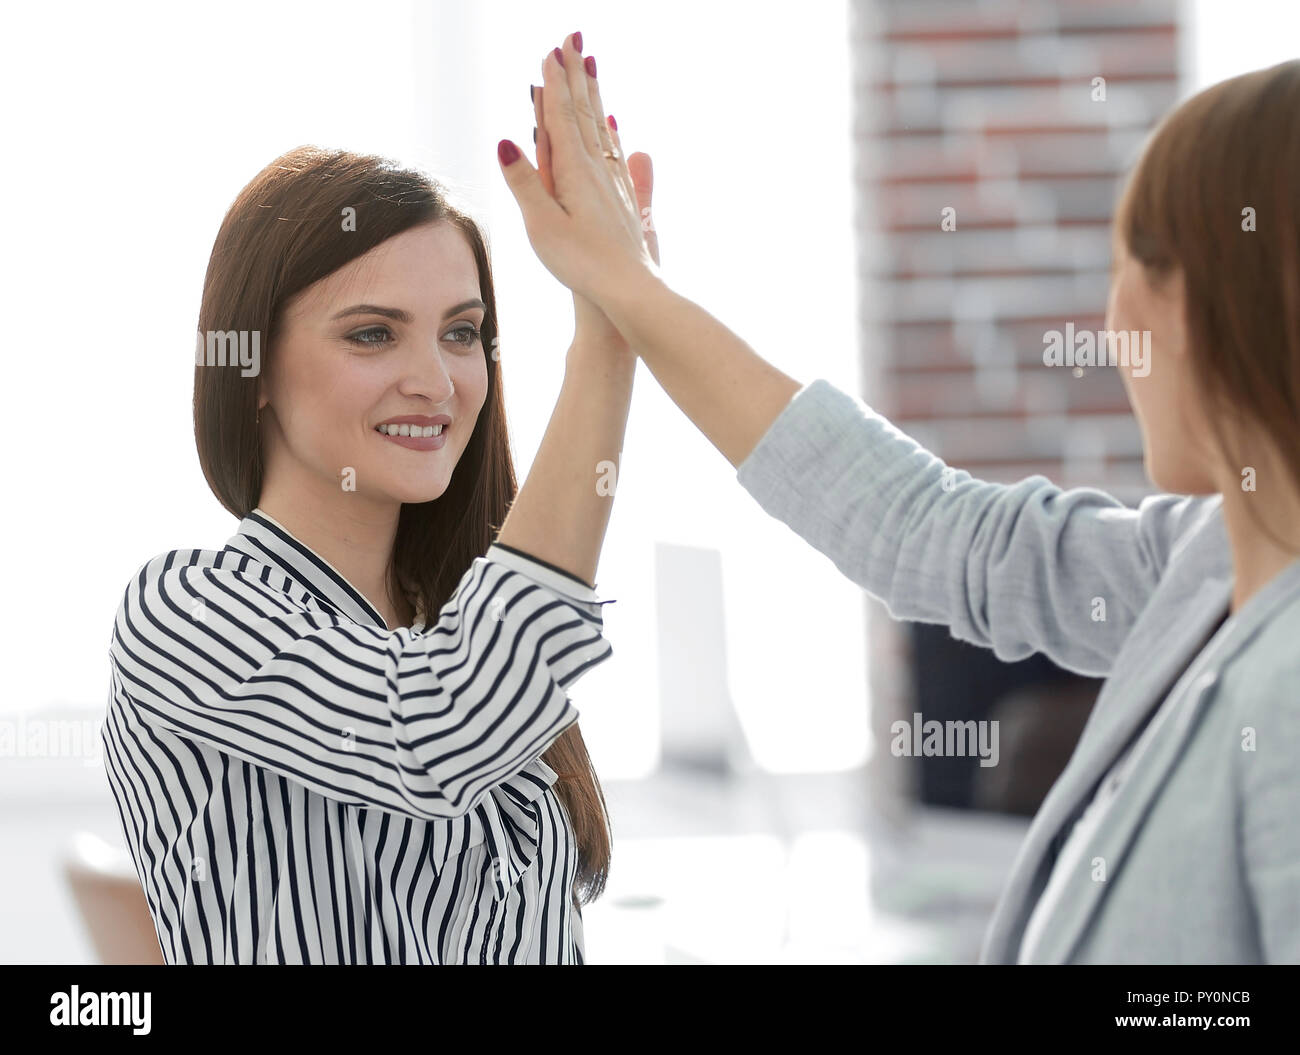 two young co-workers giving each other a high five - Stock Image